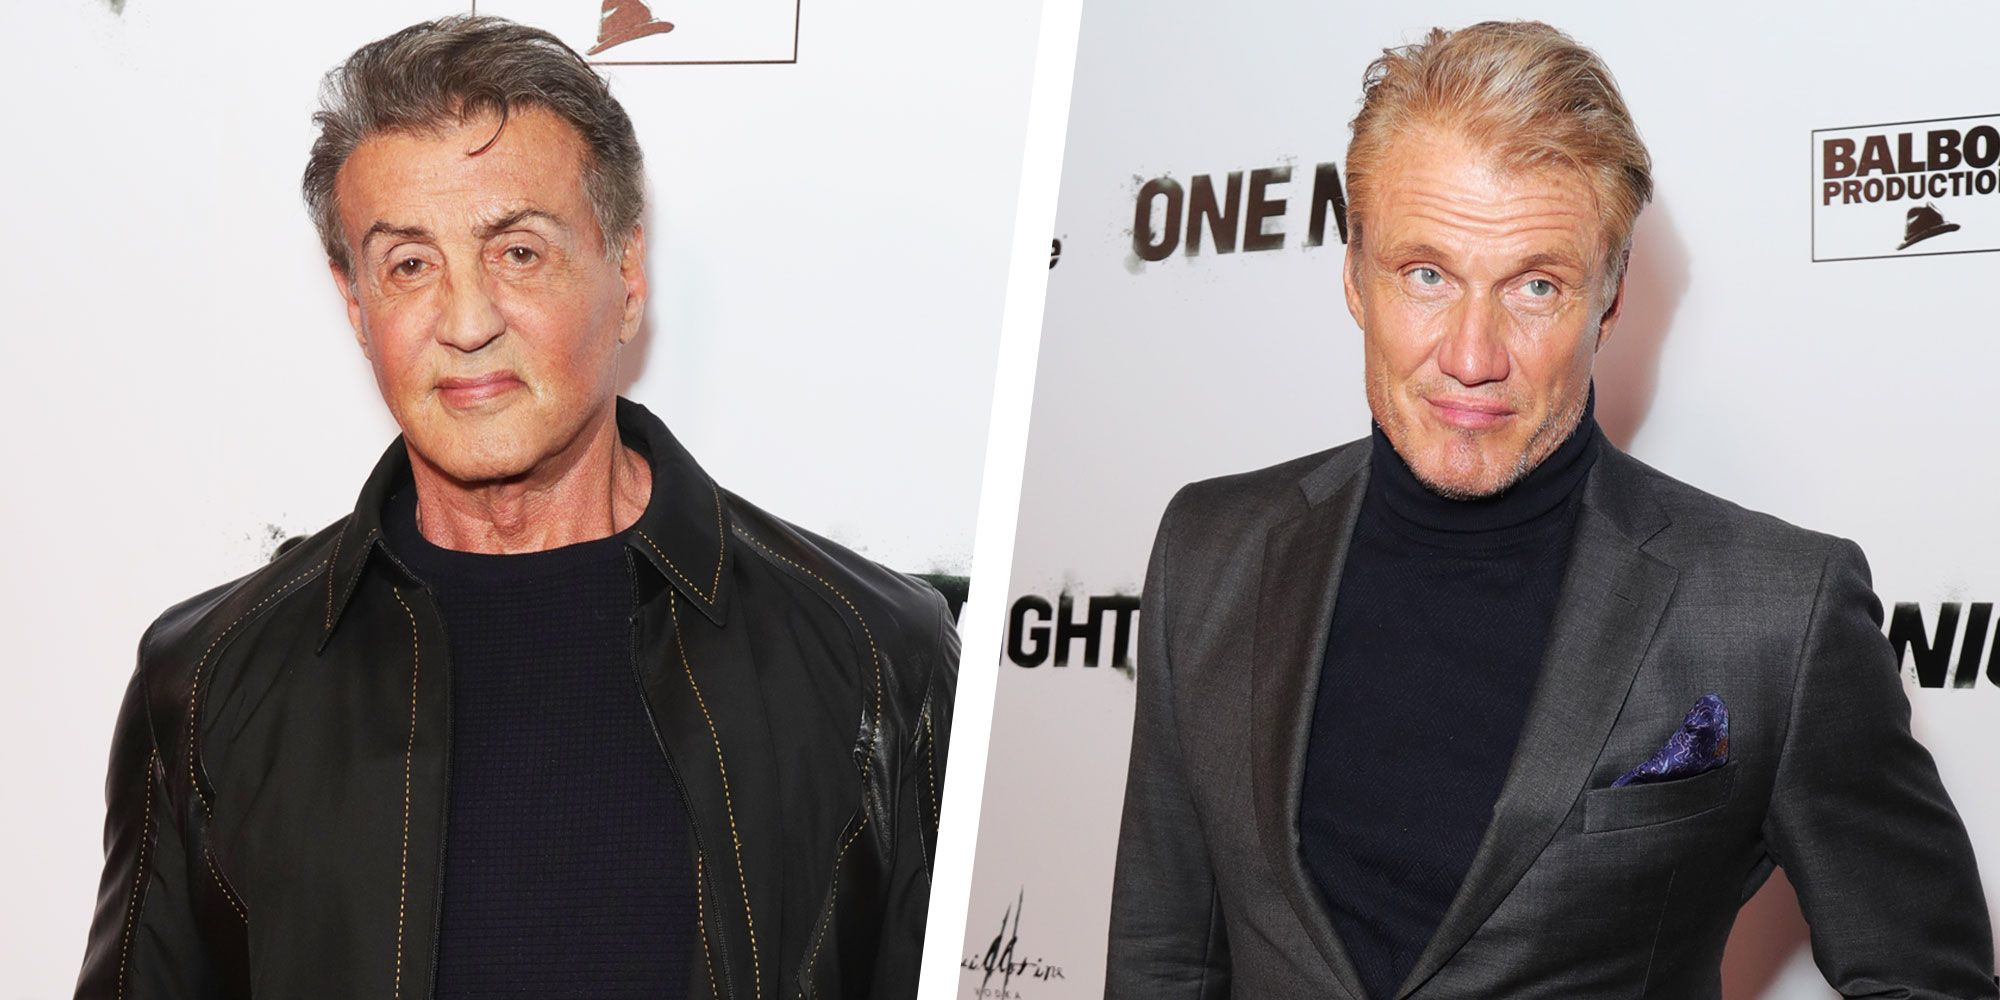 Sylvester Stallone and Dolph Lundgren Had a Rocky Reunion at Boxing Documentary Premiere